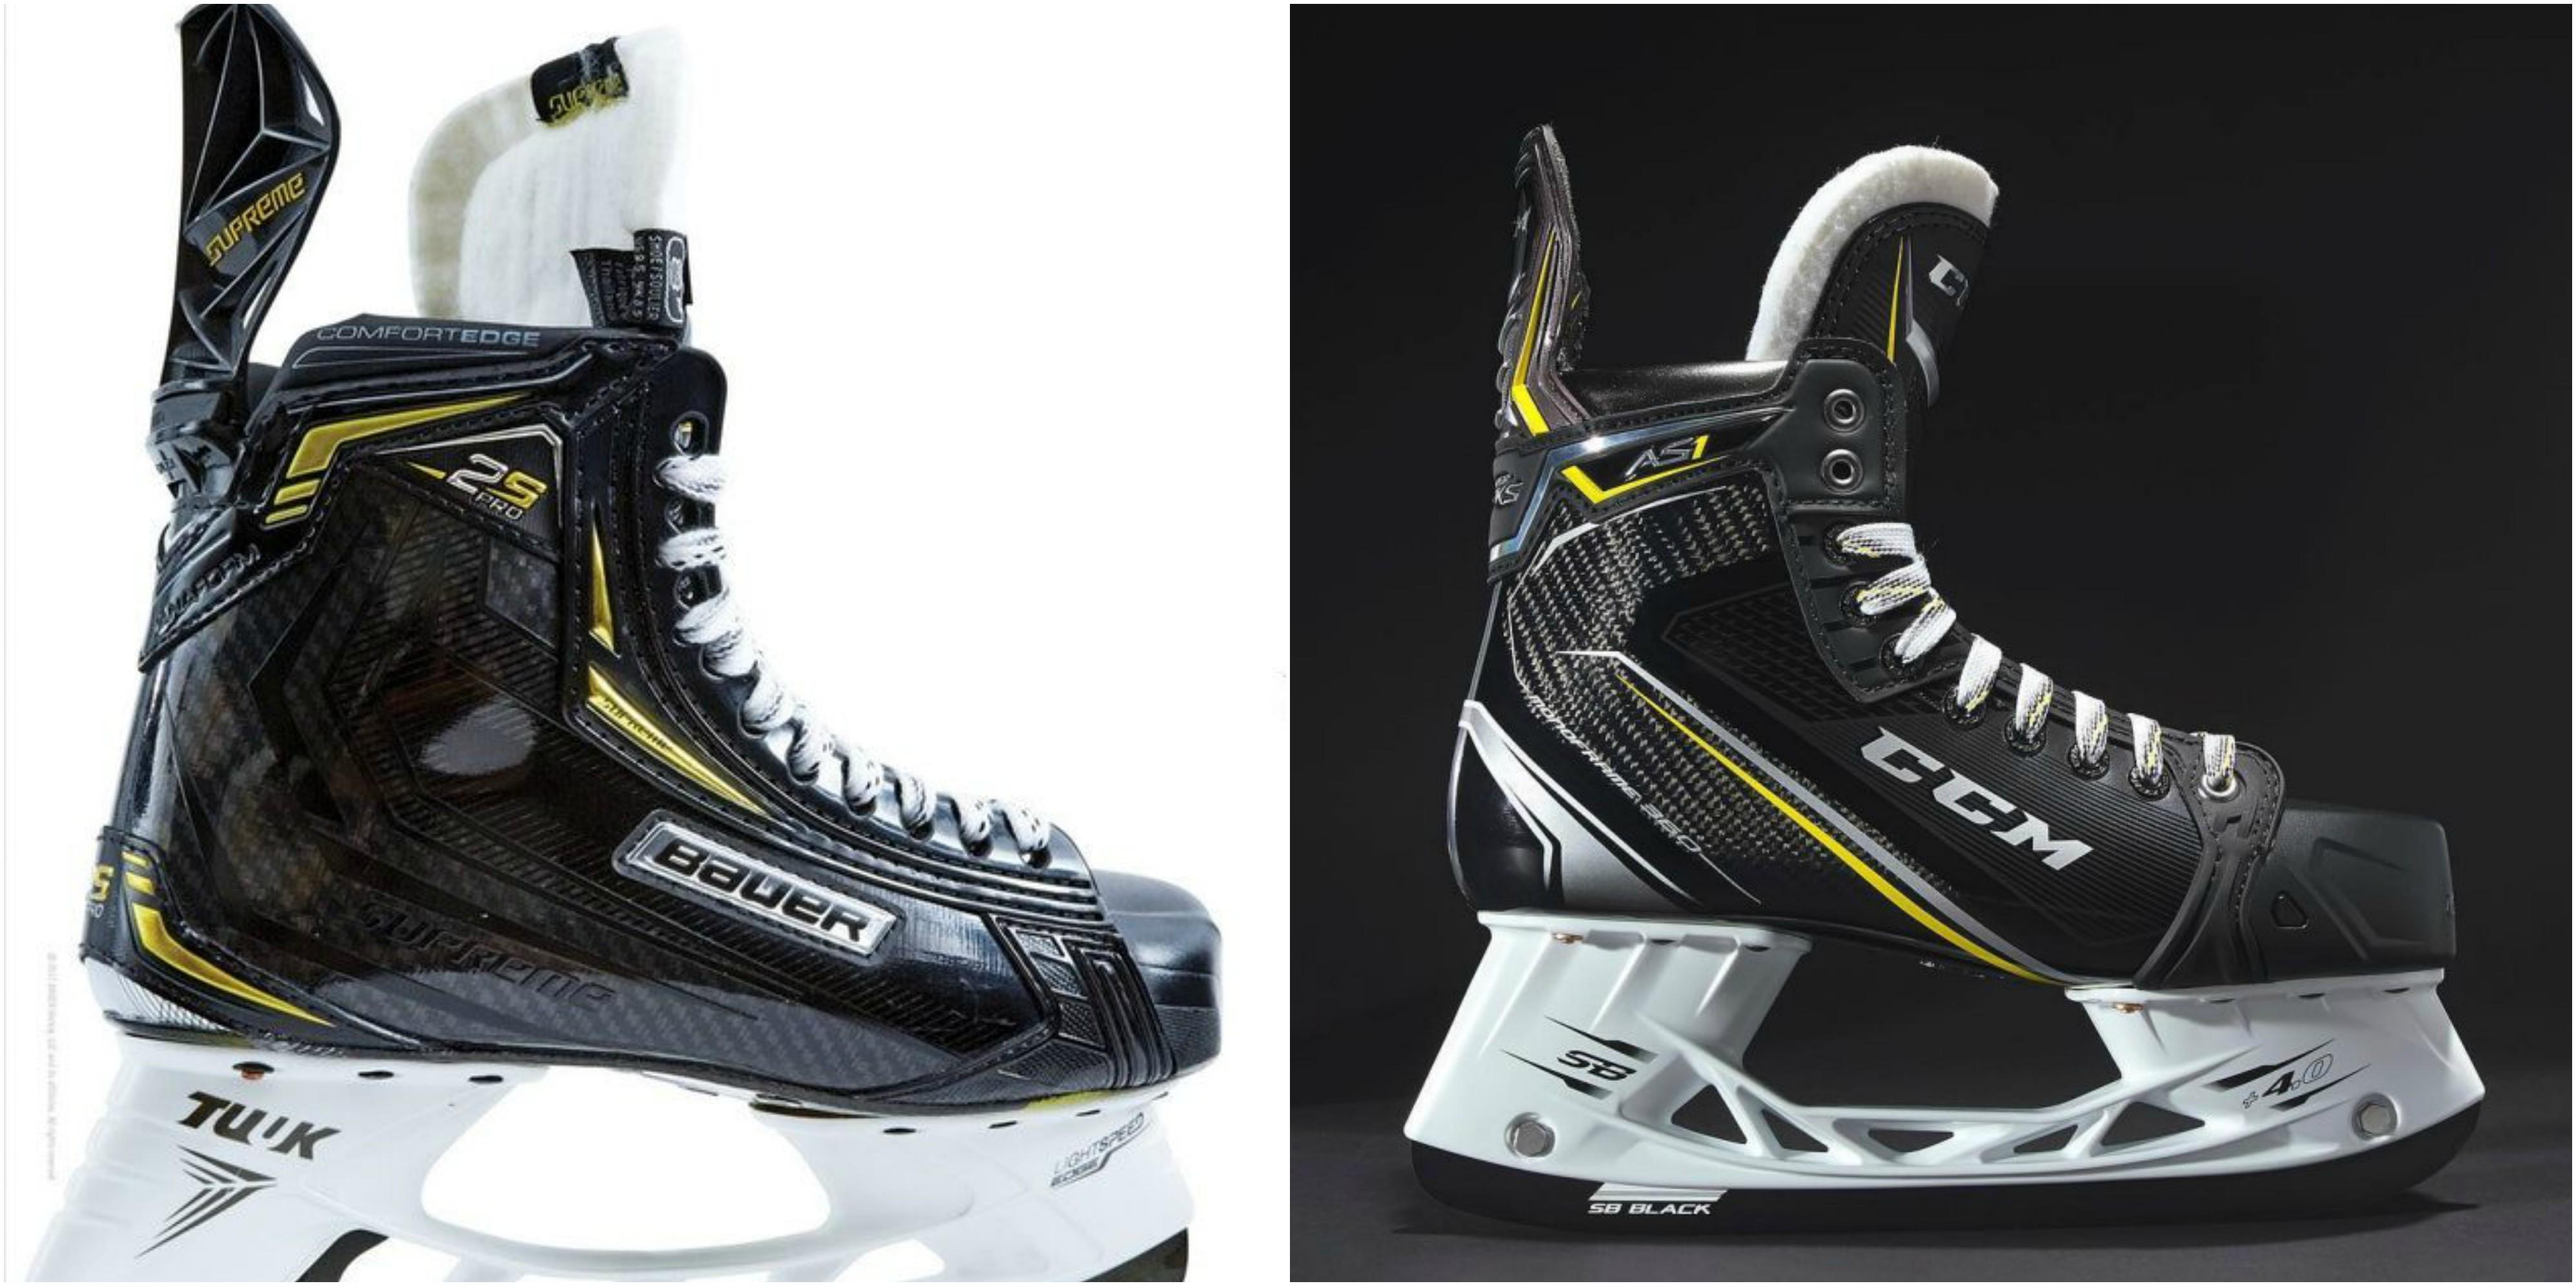 Heavy Caliber Skates Bauer 2S Vs CCM AS1